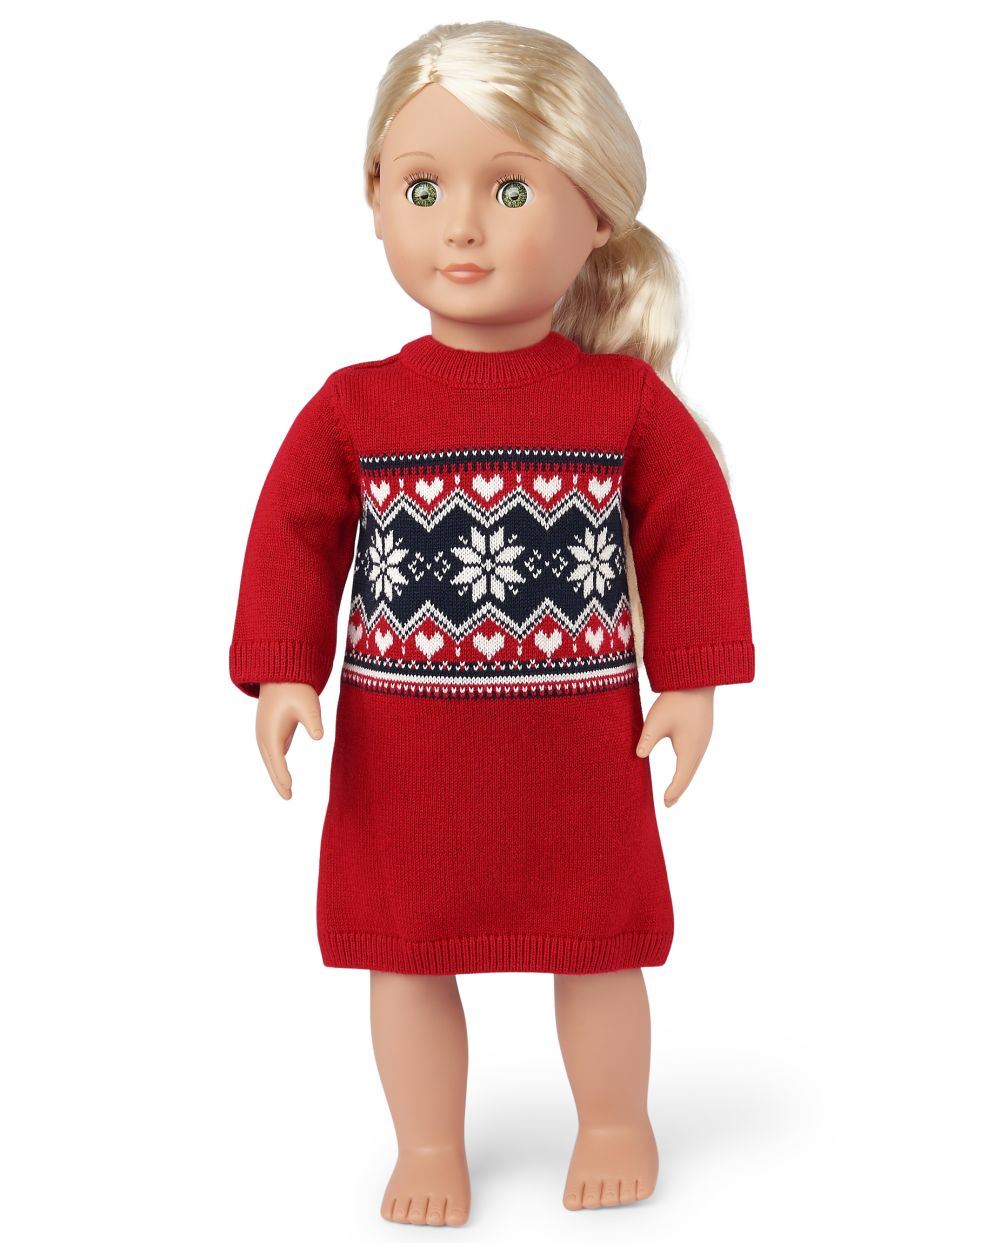 s Doll Snowflake Fairisle Sweater Dress - Red - The Children's Place